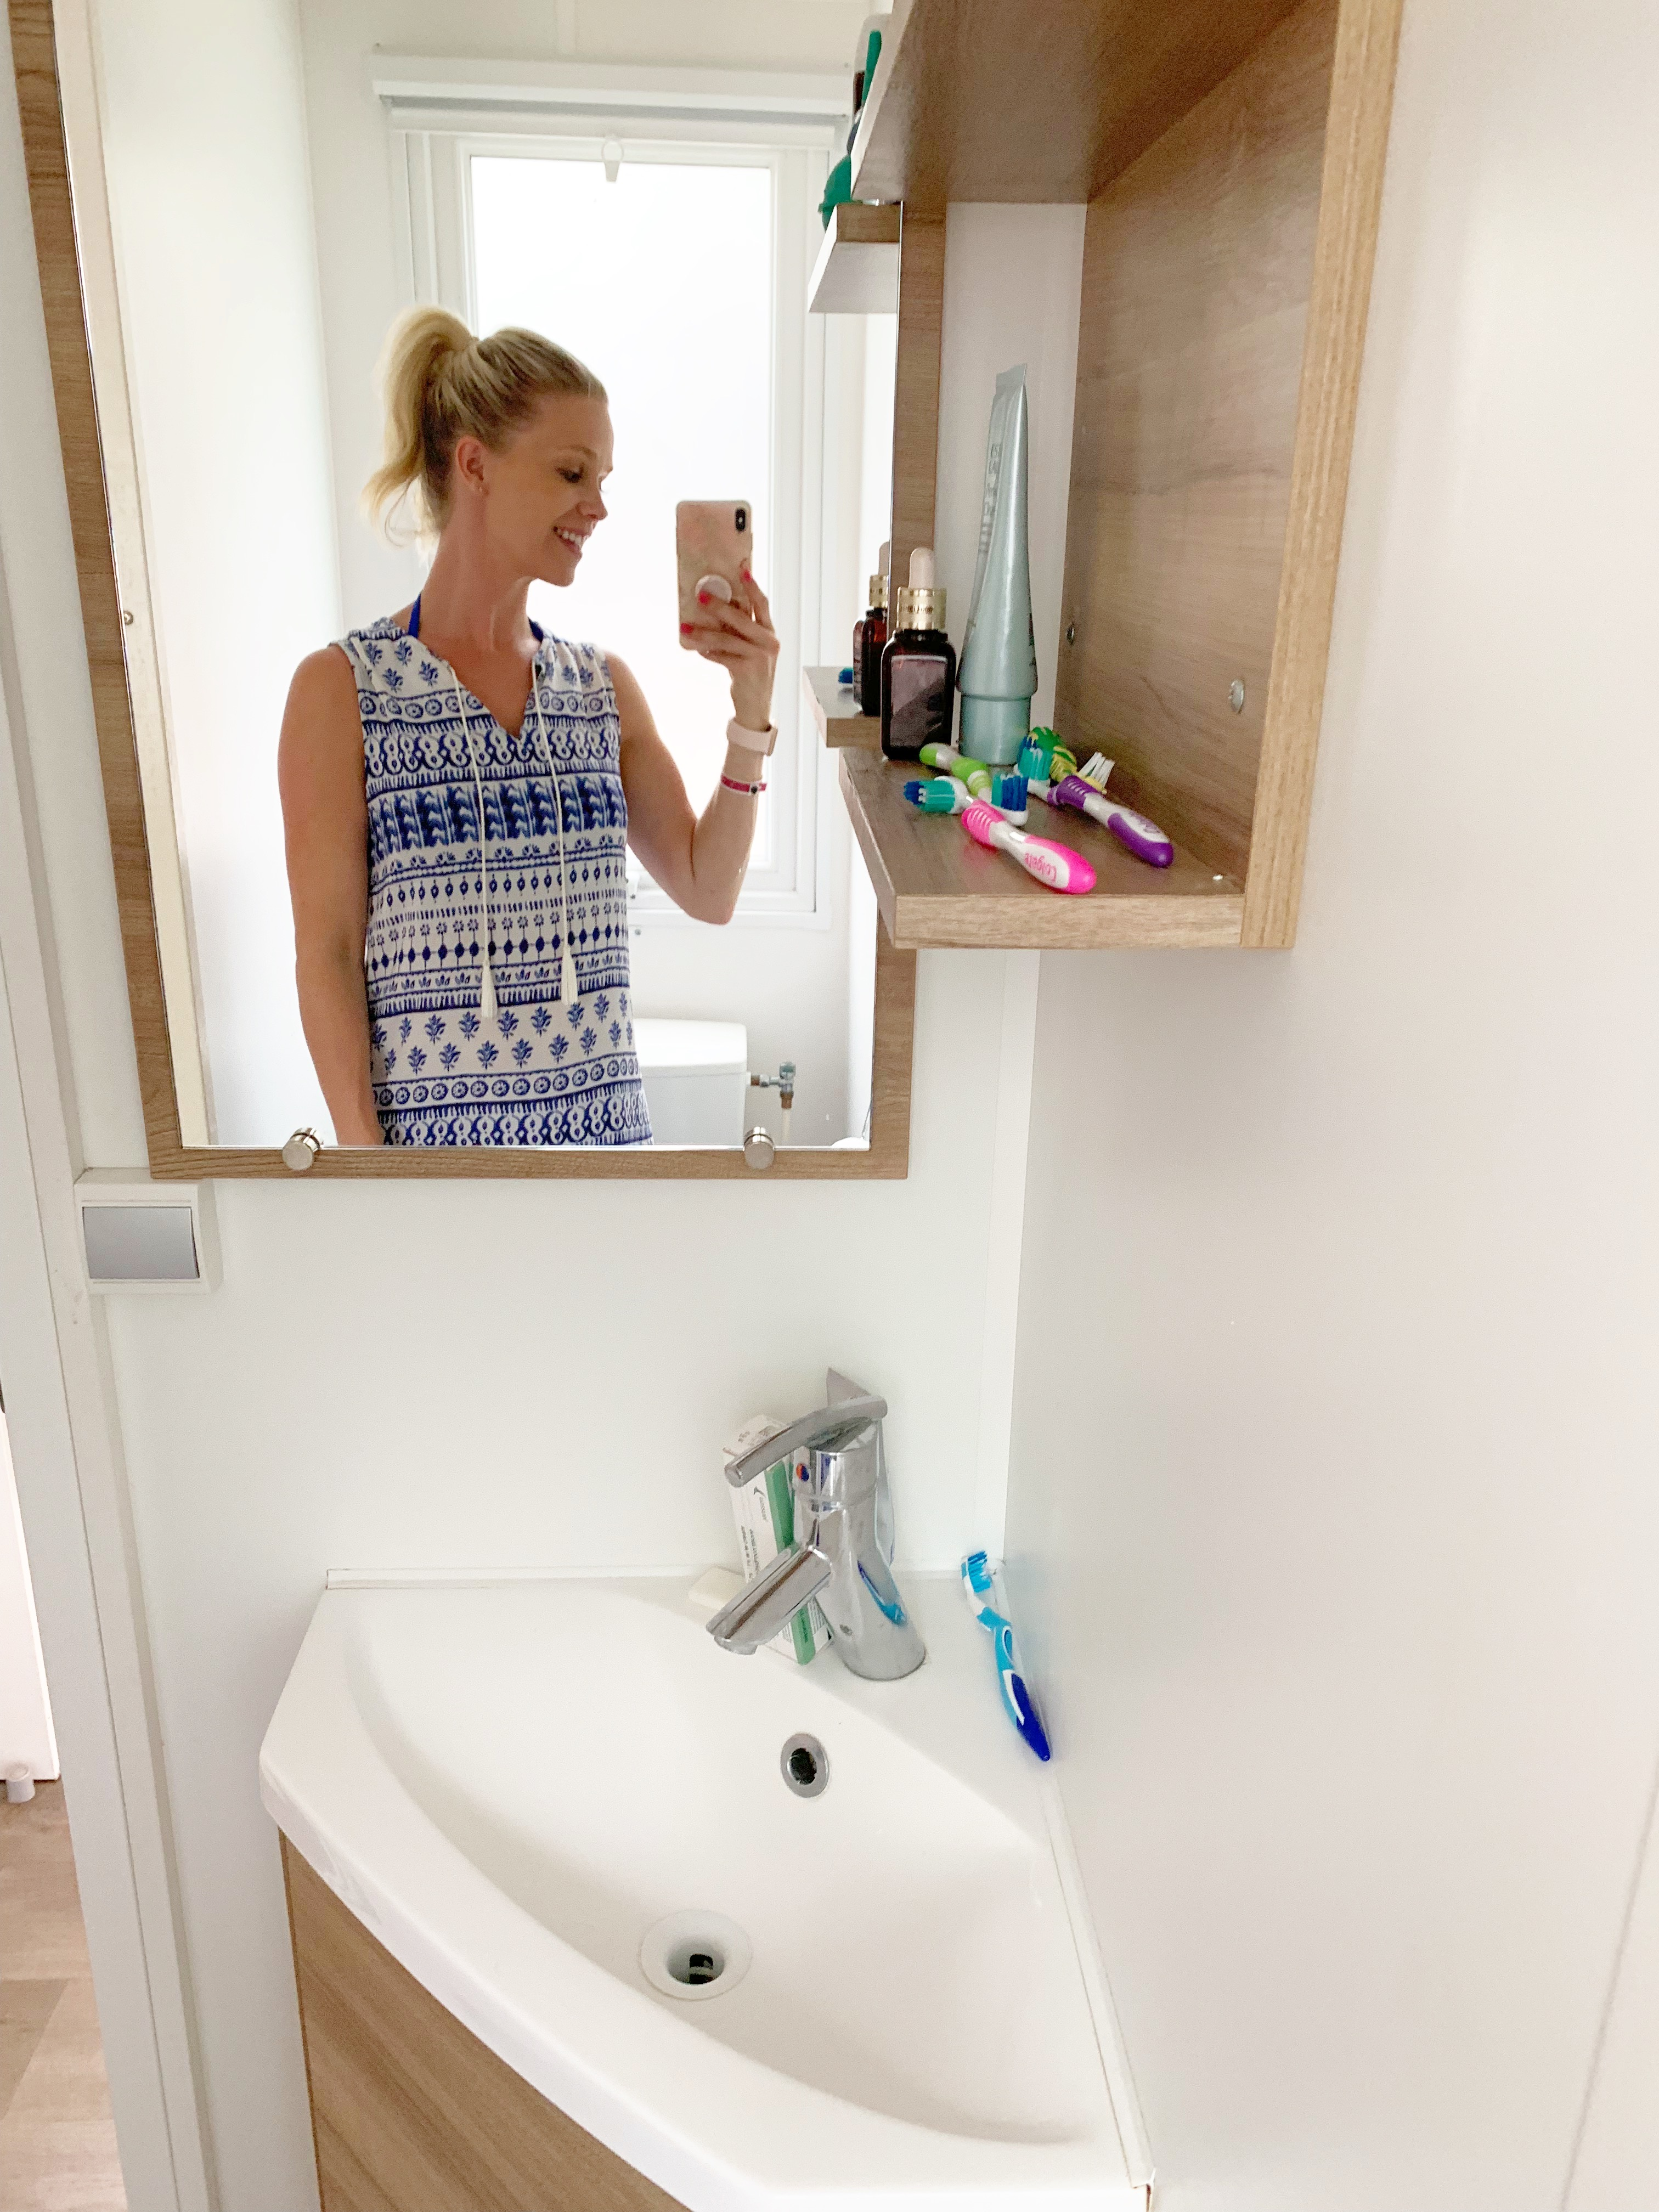 A woman smiling in the mirror on a bathroom wall. Below the mirror is a small sink with a toothbrush on it, and beside the mirror is a shelf with more toothbrushes and some other toiletries